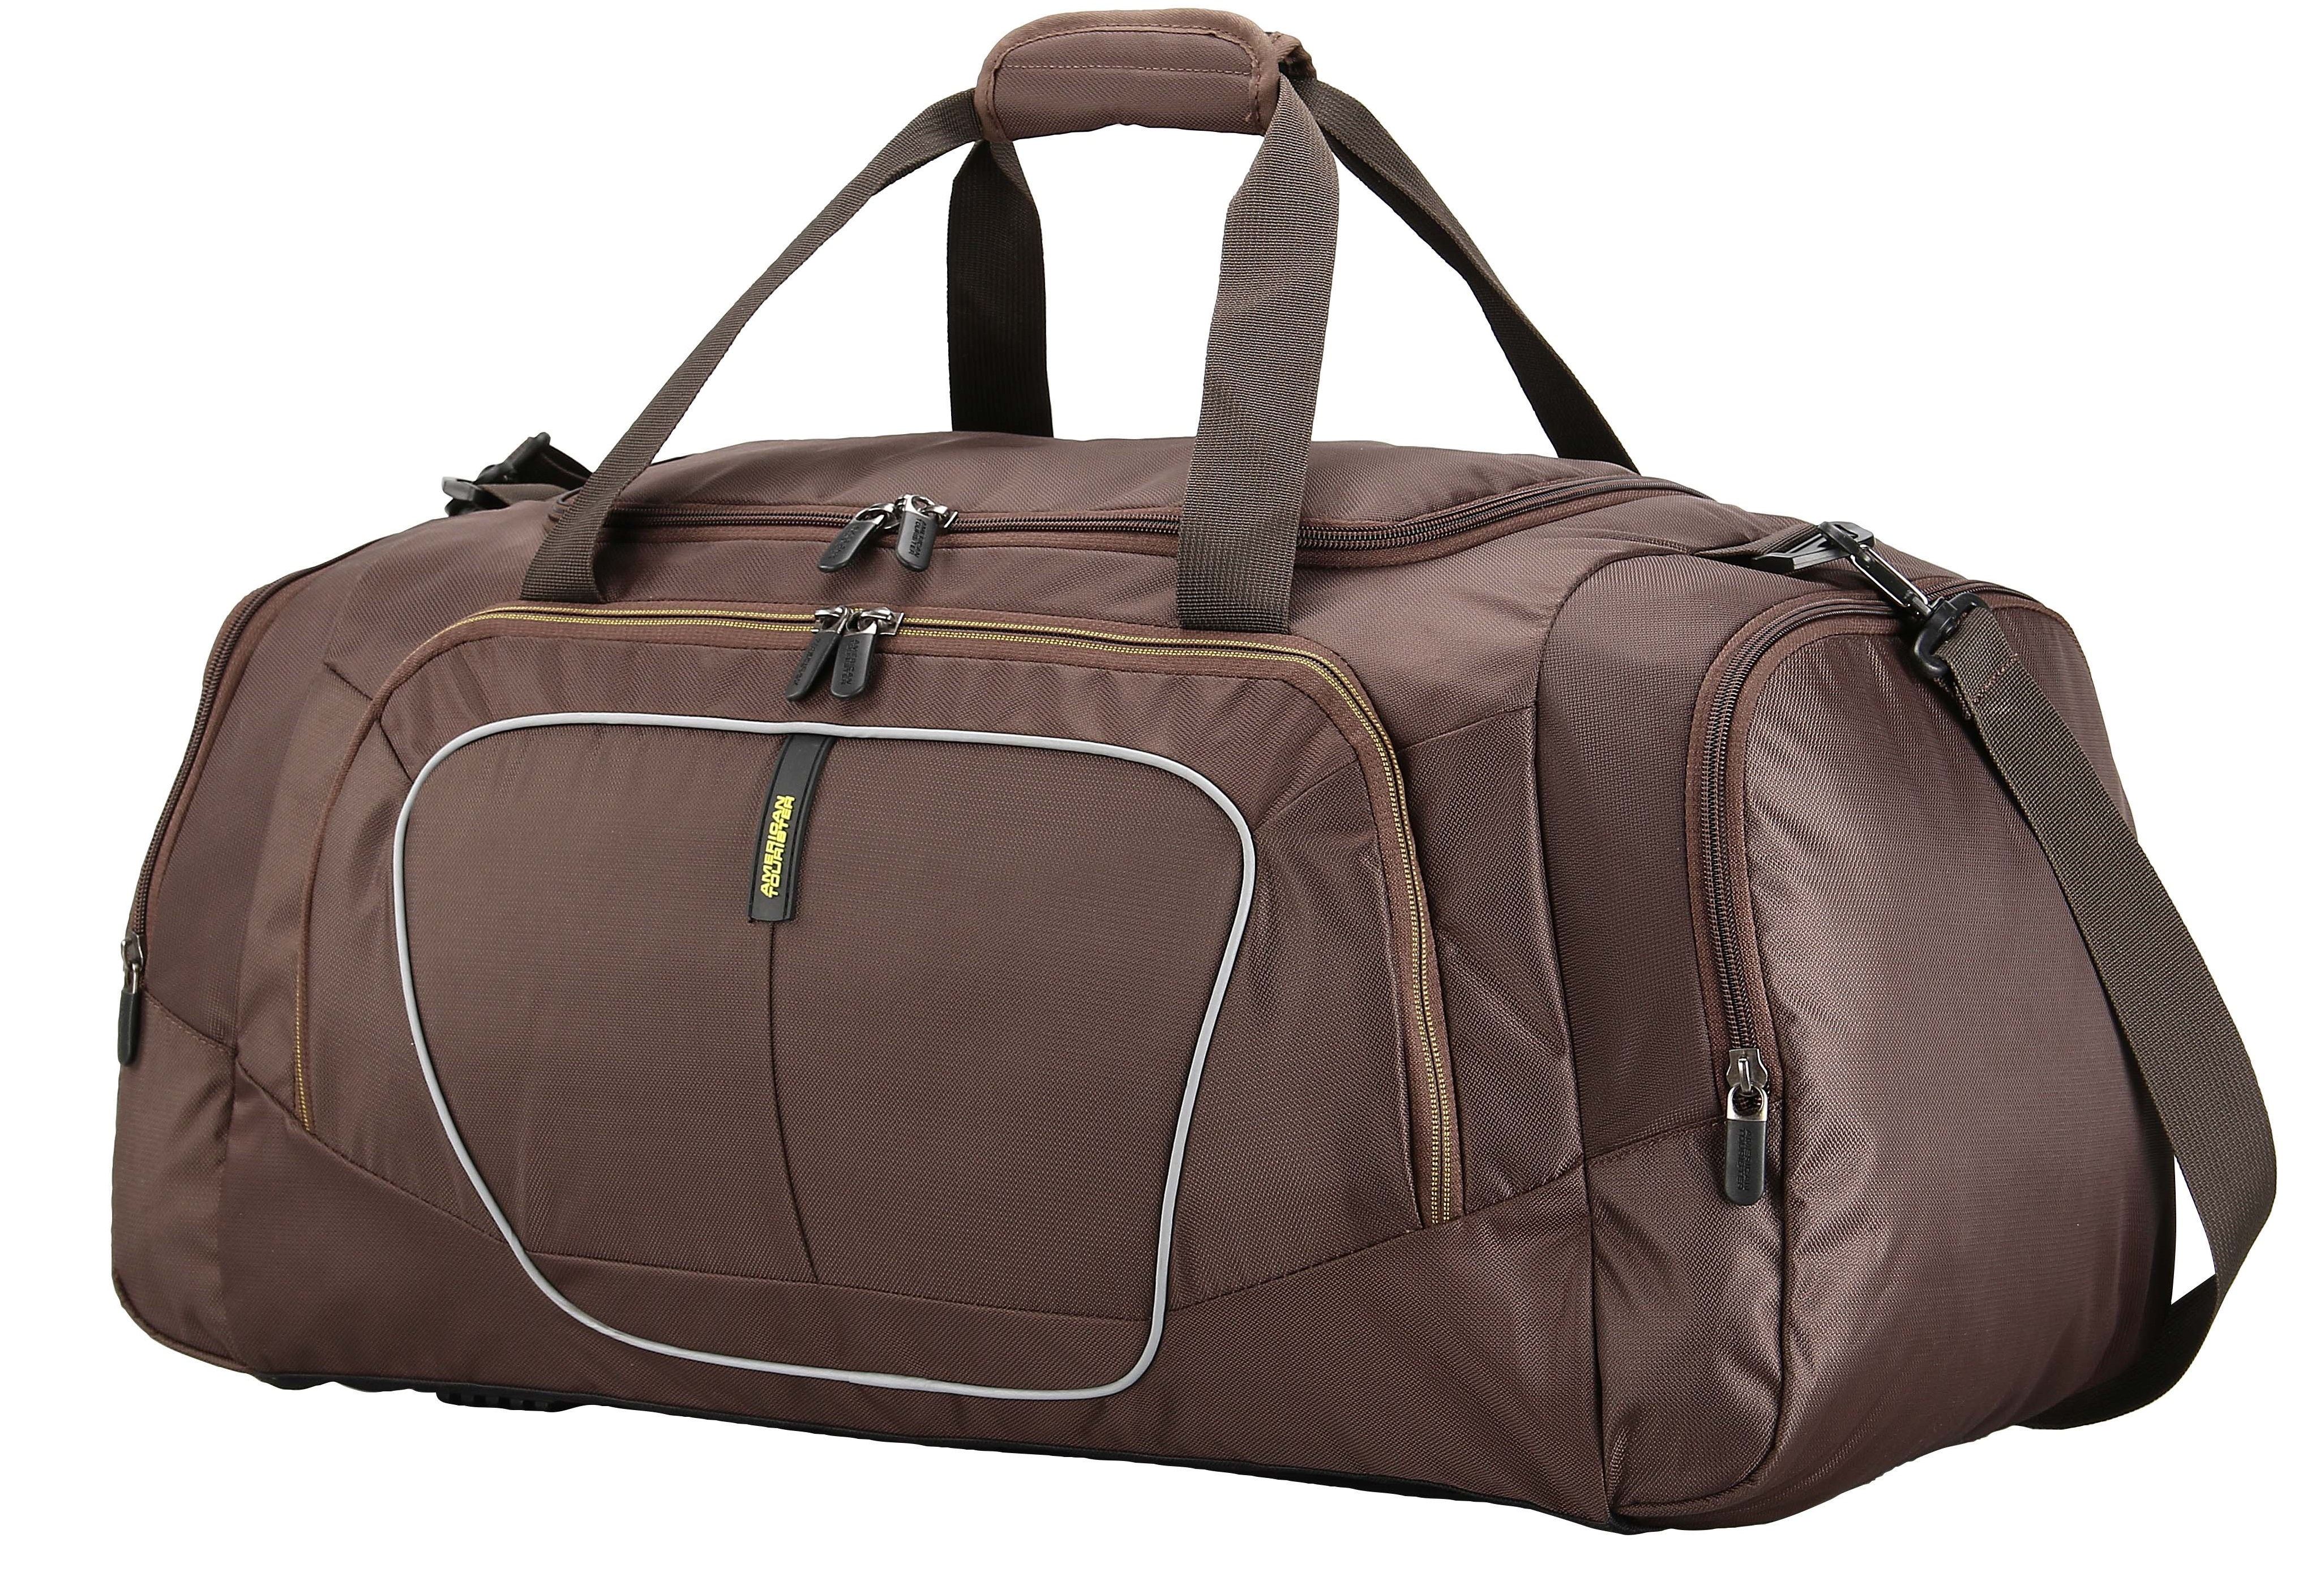 American tourister trolley bags online purchase – Trend models of ...